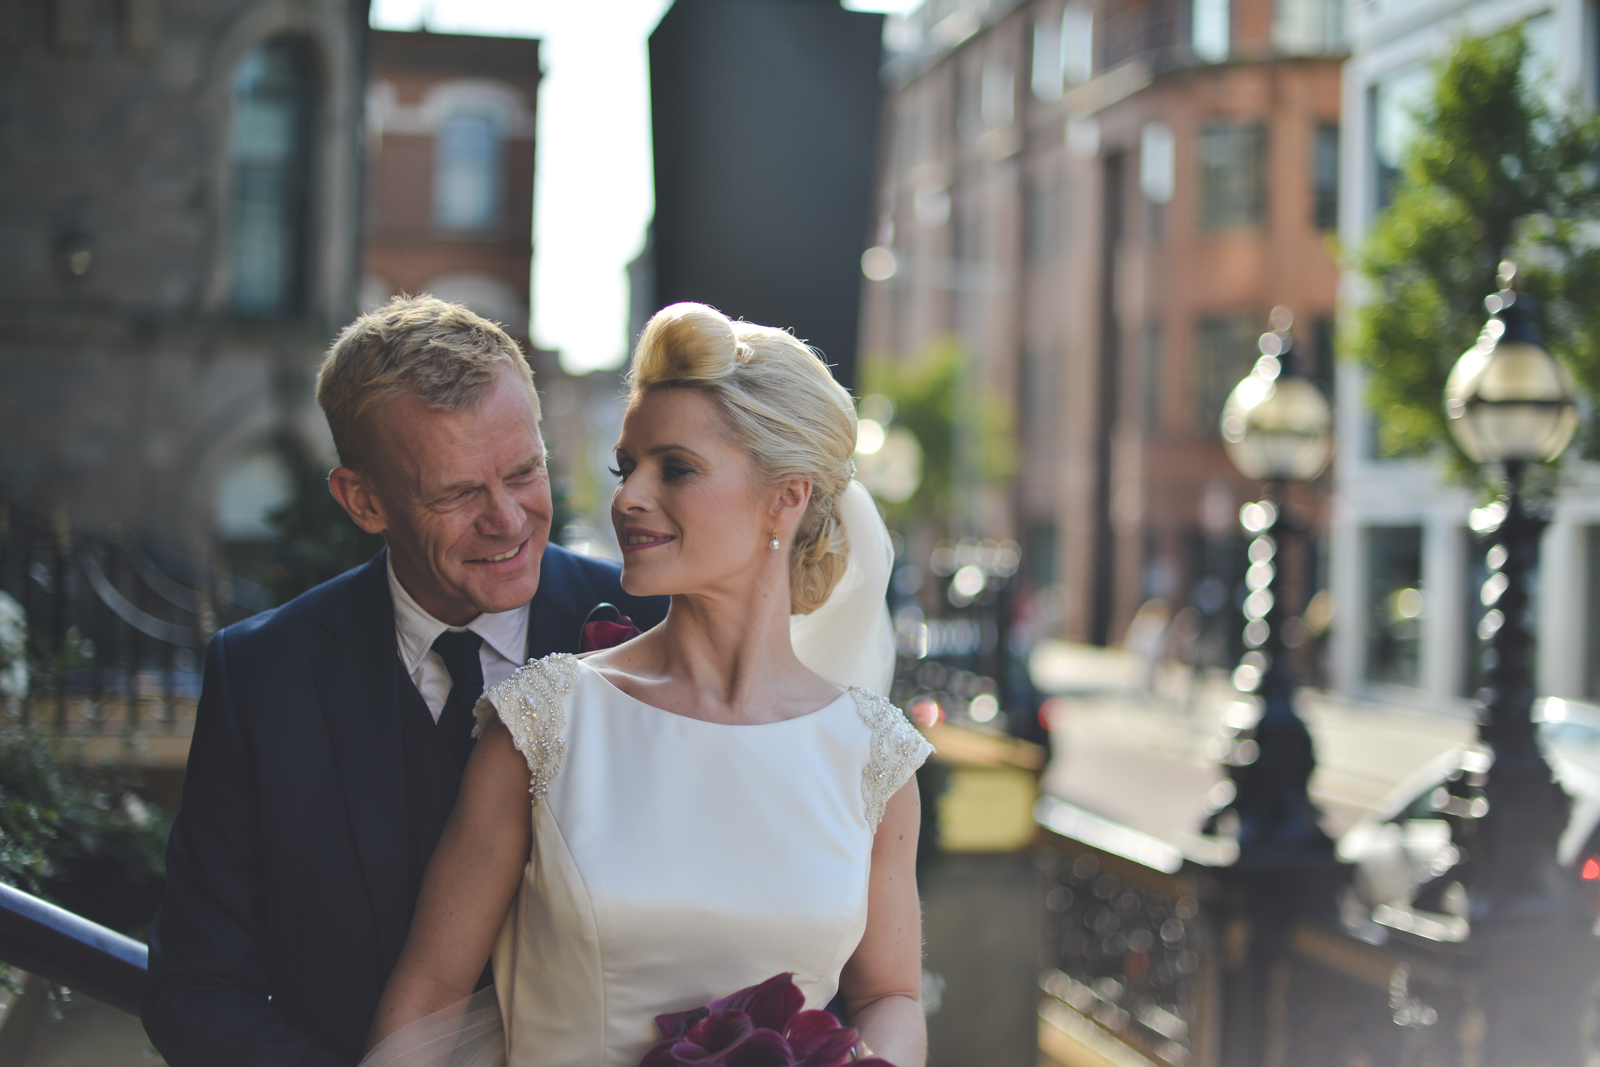 Conleth teevan wedding